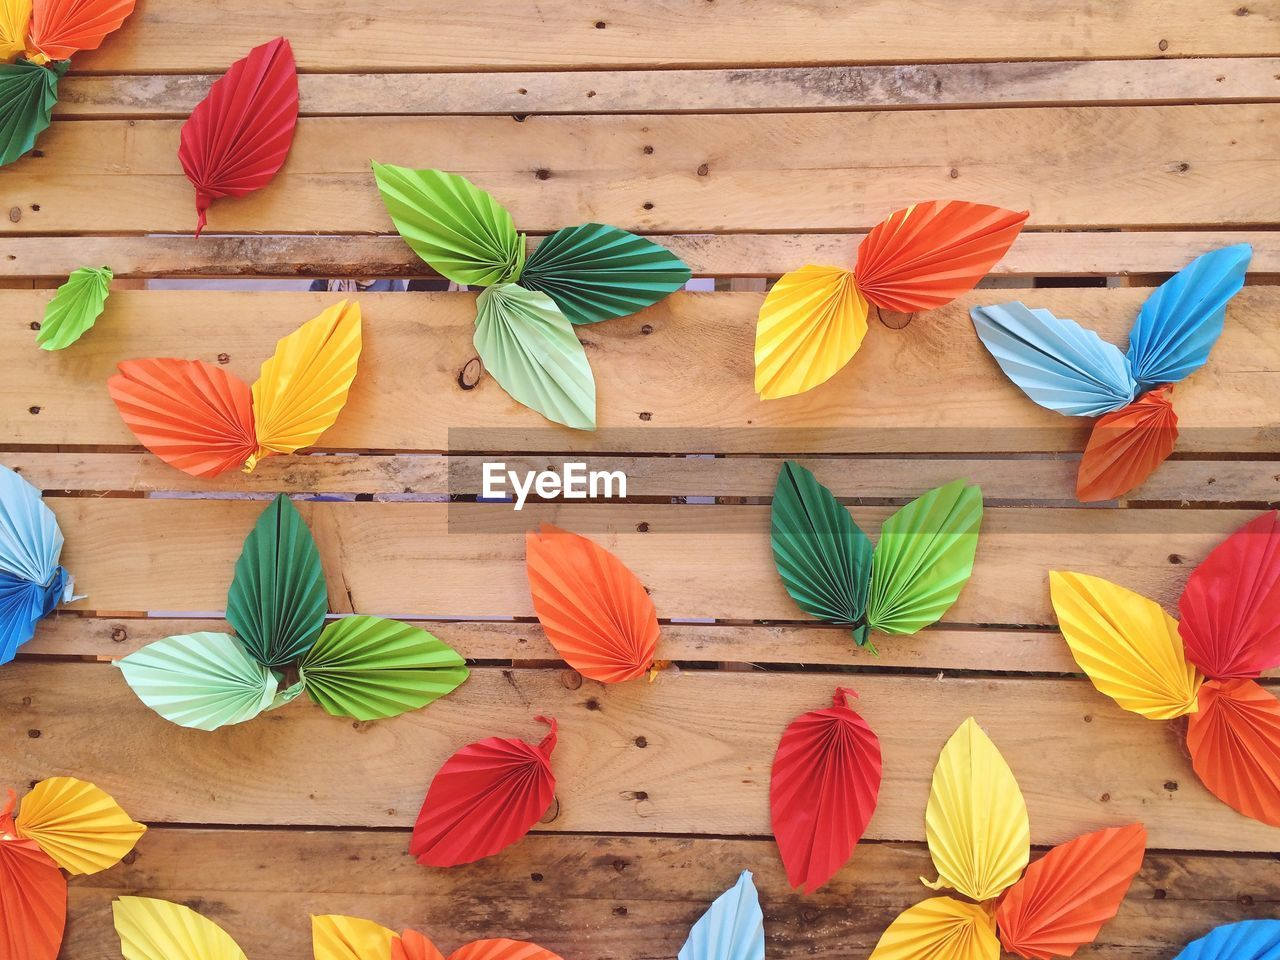 Close-Up Of Colorful Leaves On Wooden Surface